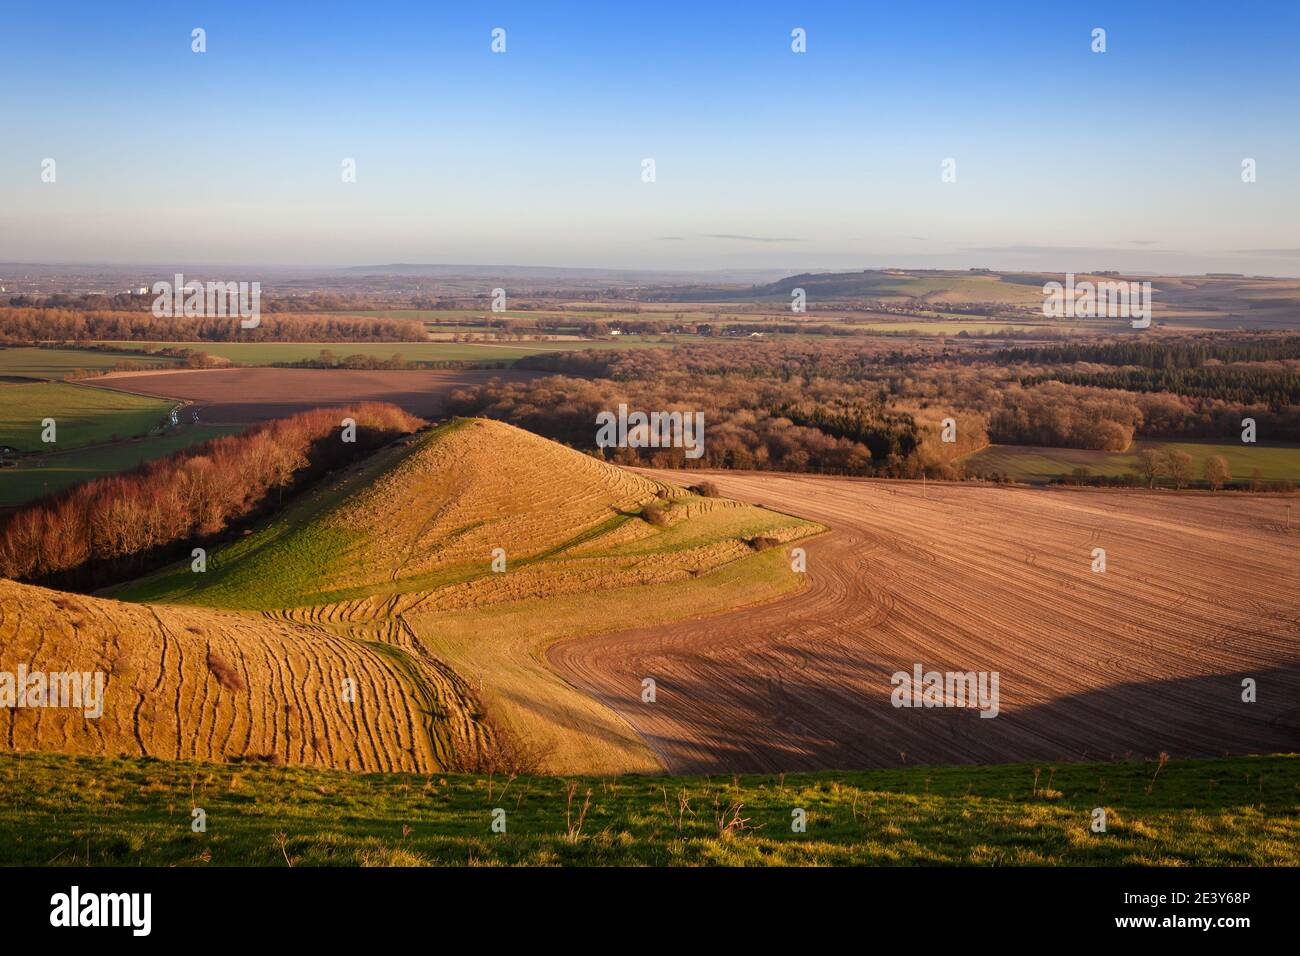 Looking out from Cley Hill across Warminster, Wiltshire Stock Photo